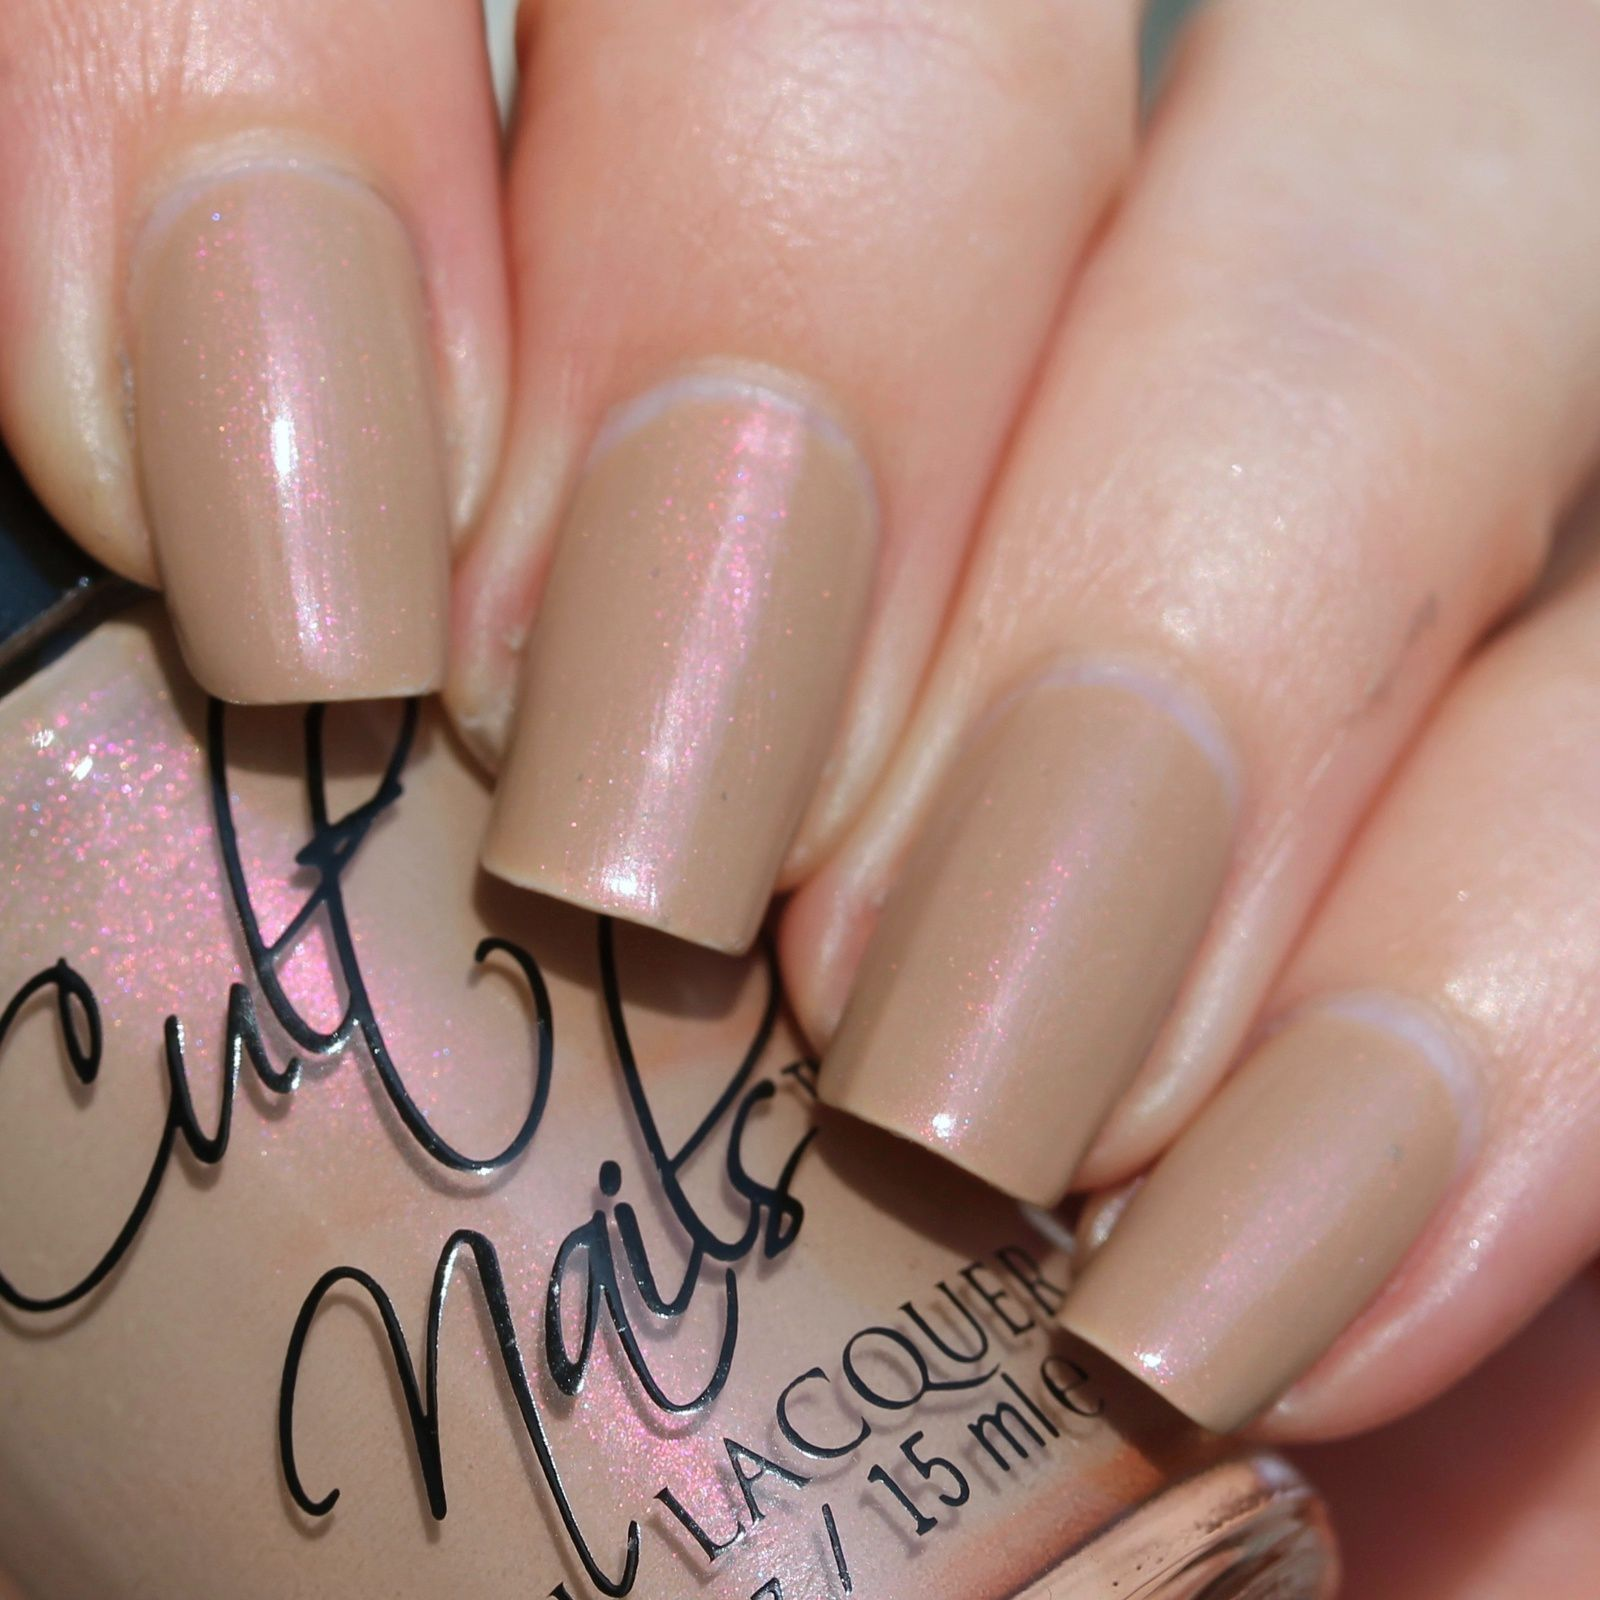 Duri Rejuvacote / Cult Nails Cruisin' Nude / HK Girl Top Coat